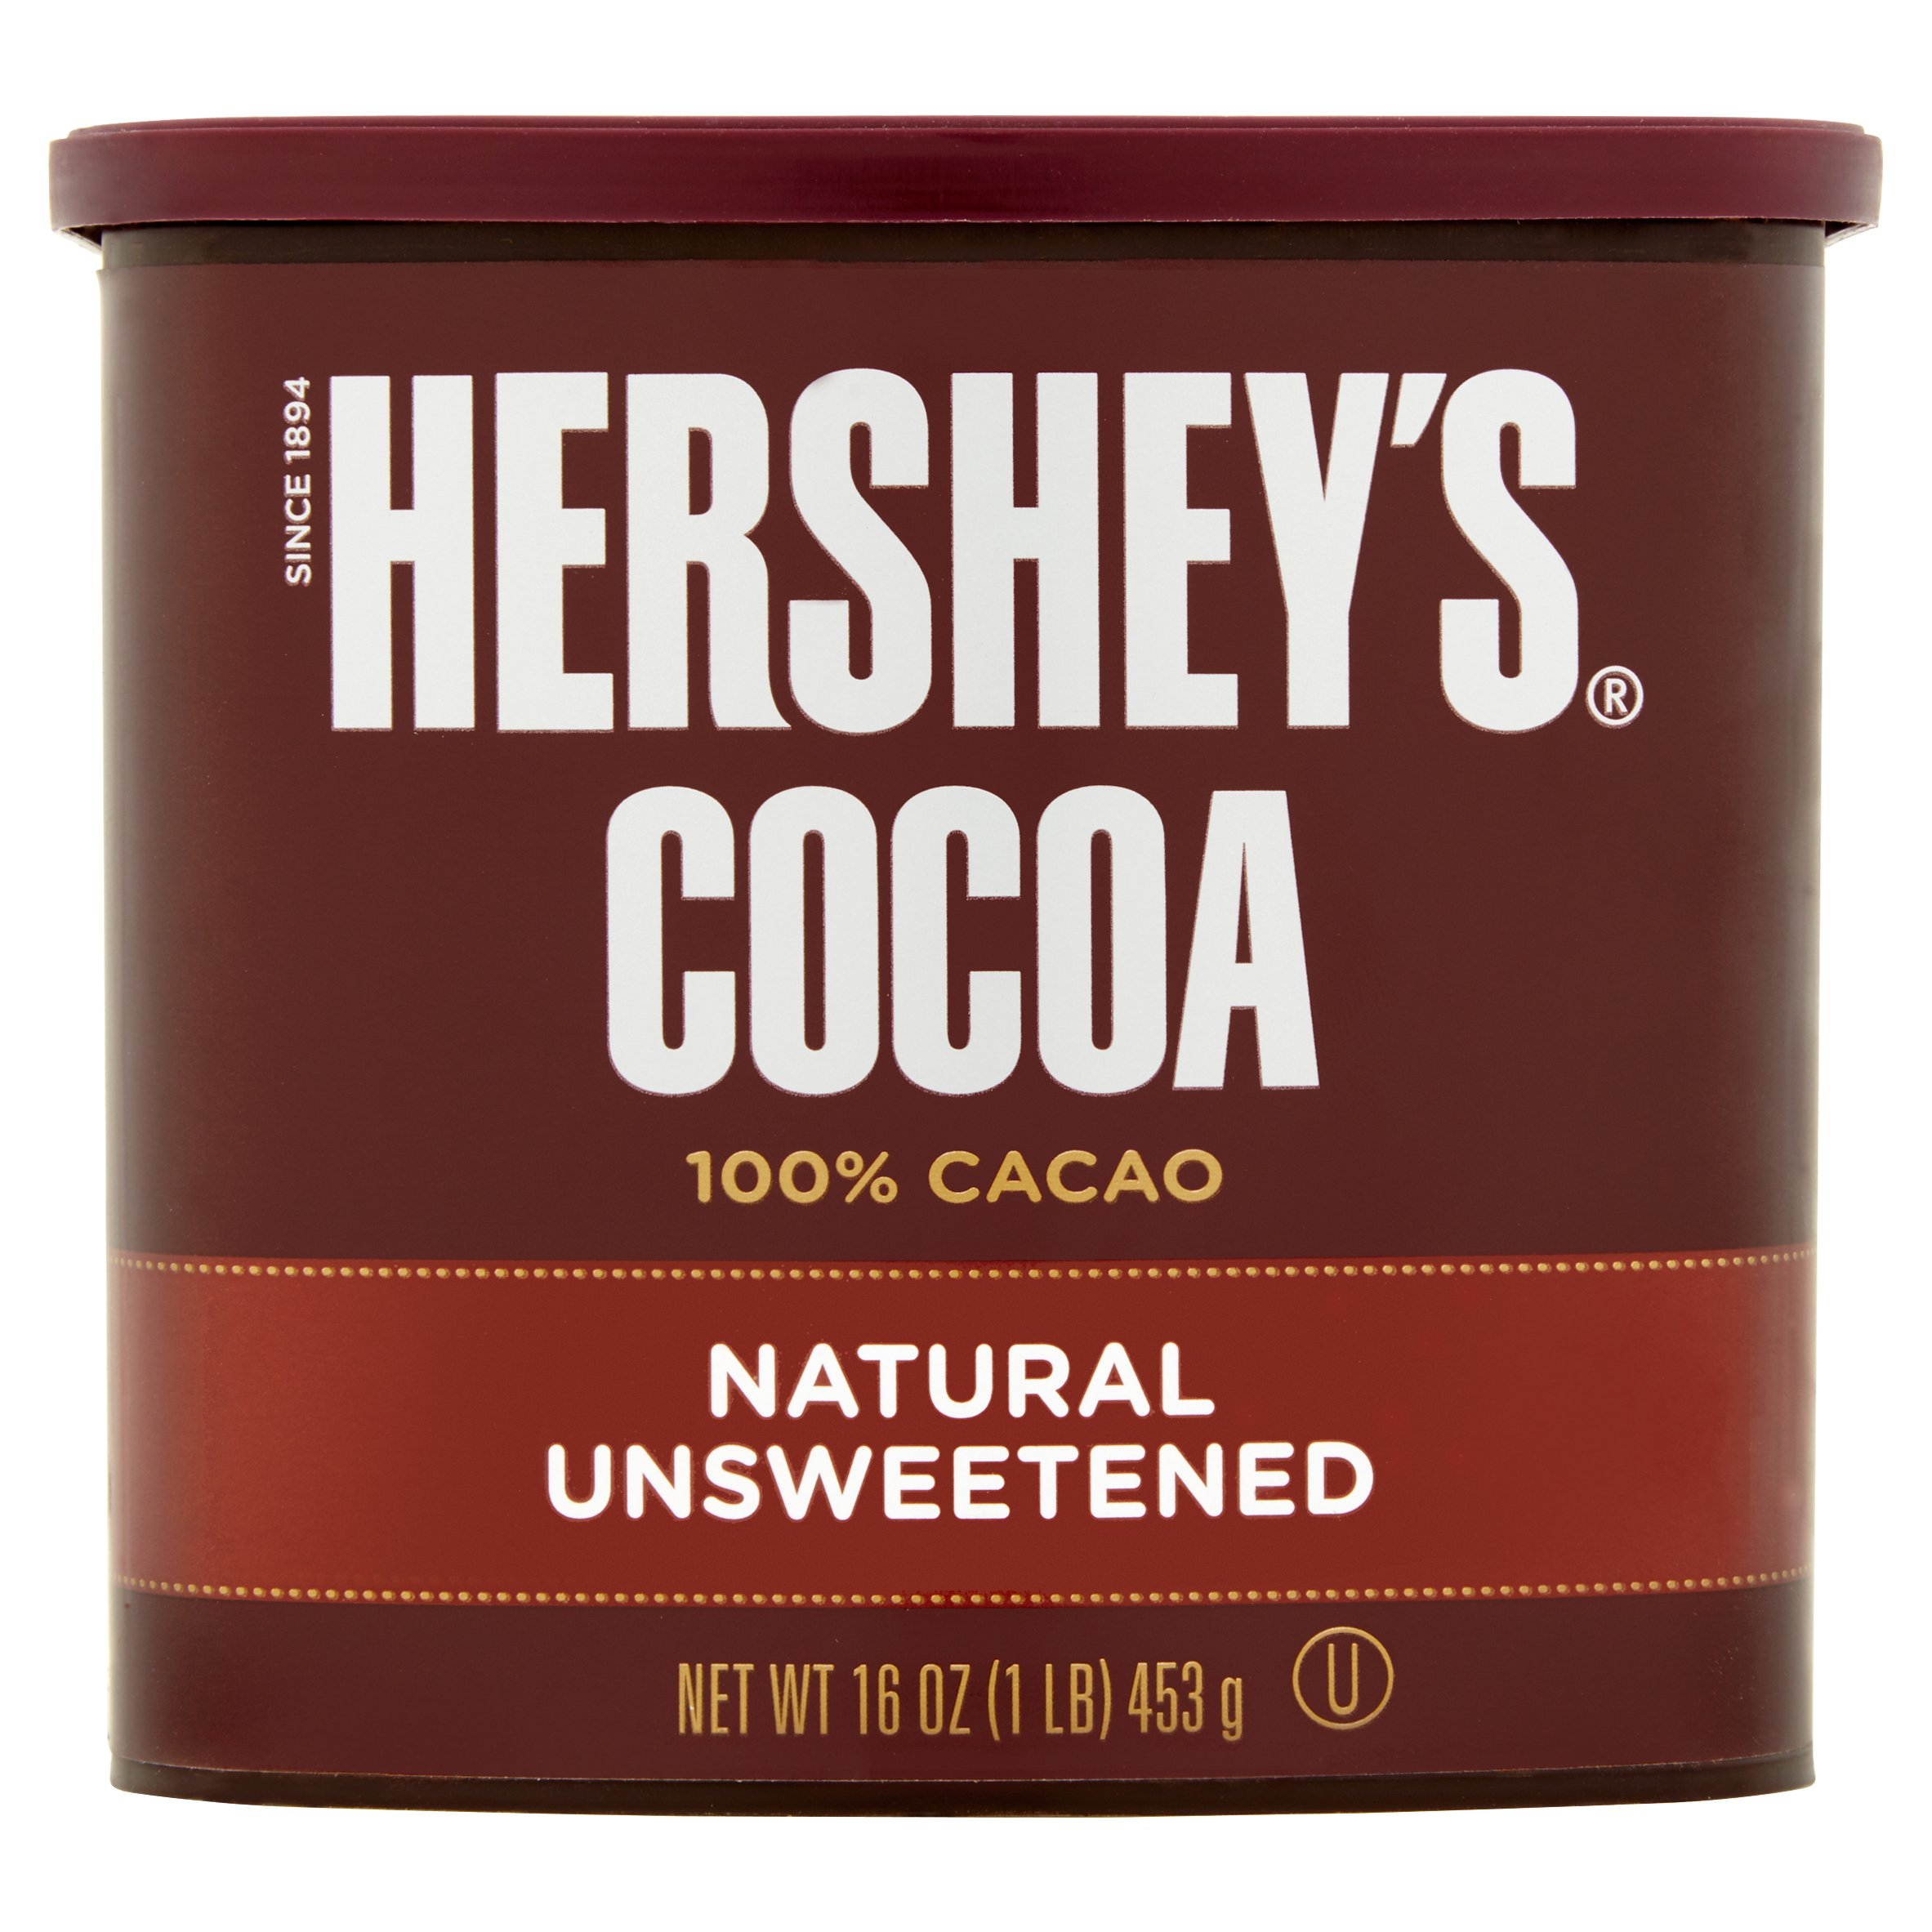 (6 Pack) Hershey's Natural Unsweetened Cocoa, 16 Oz - $0.36/oz